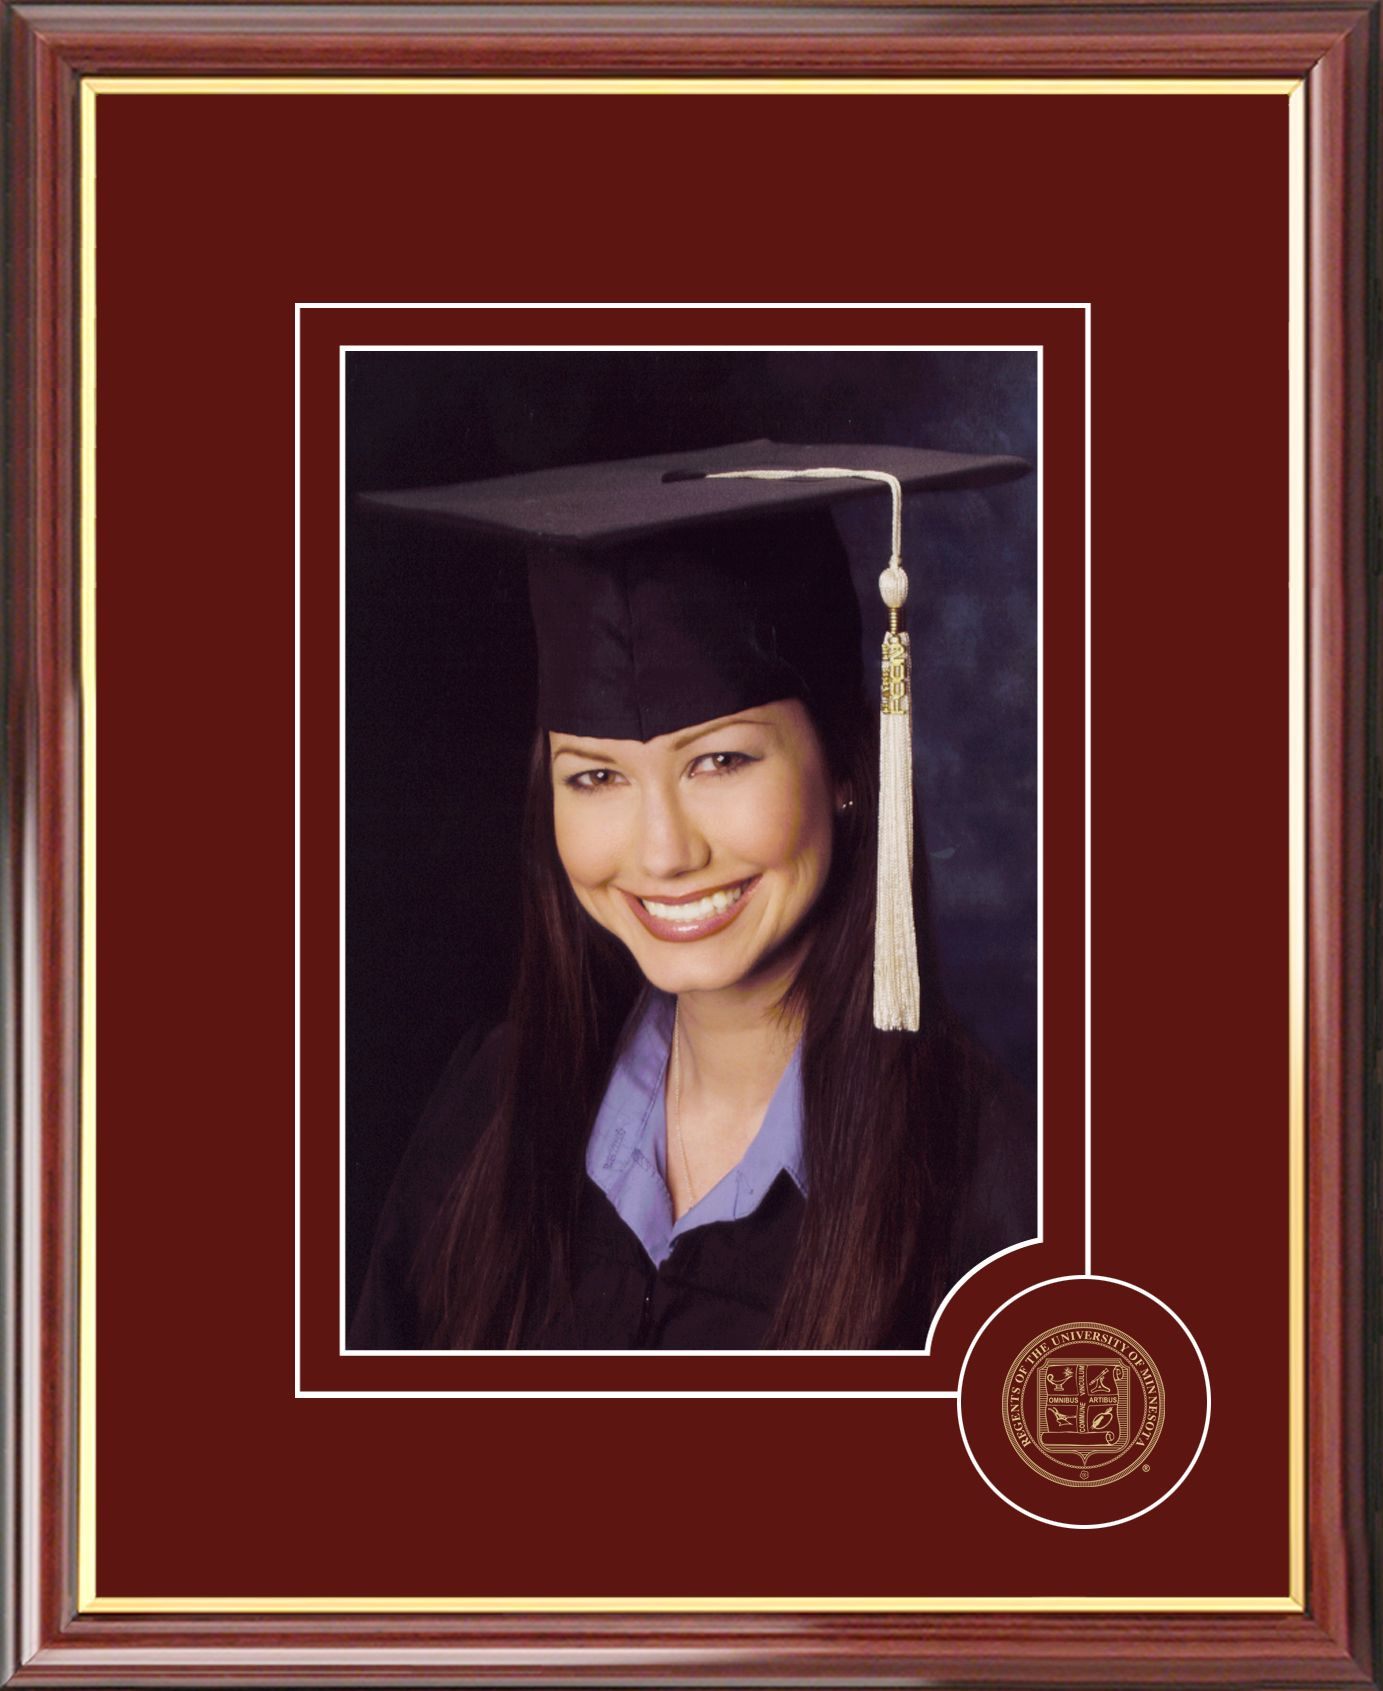 University of Minnesota 5X7 Graduate Portrait Frame